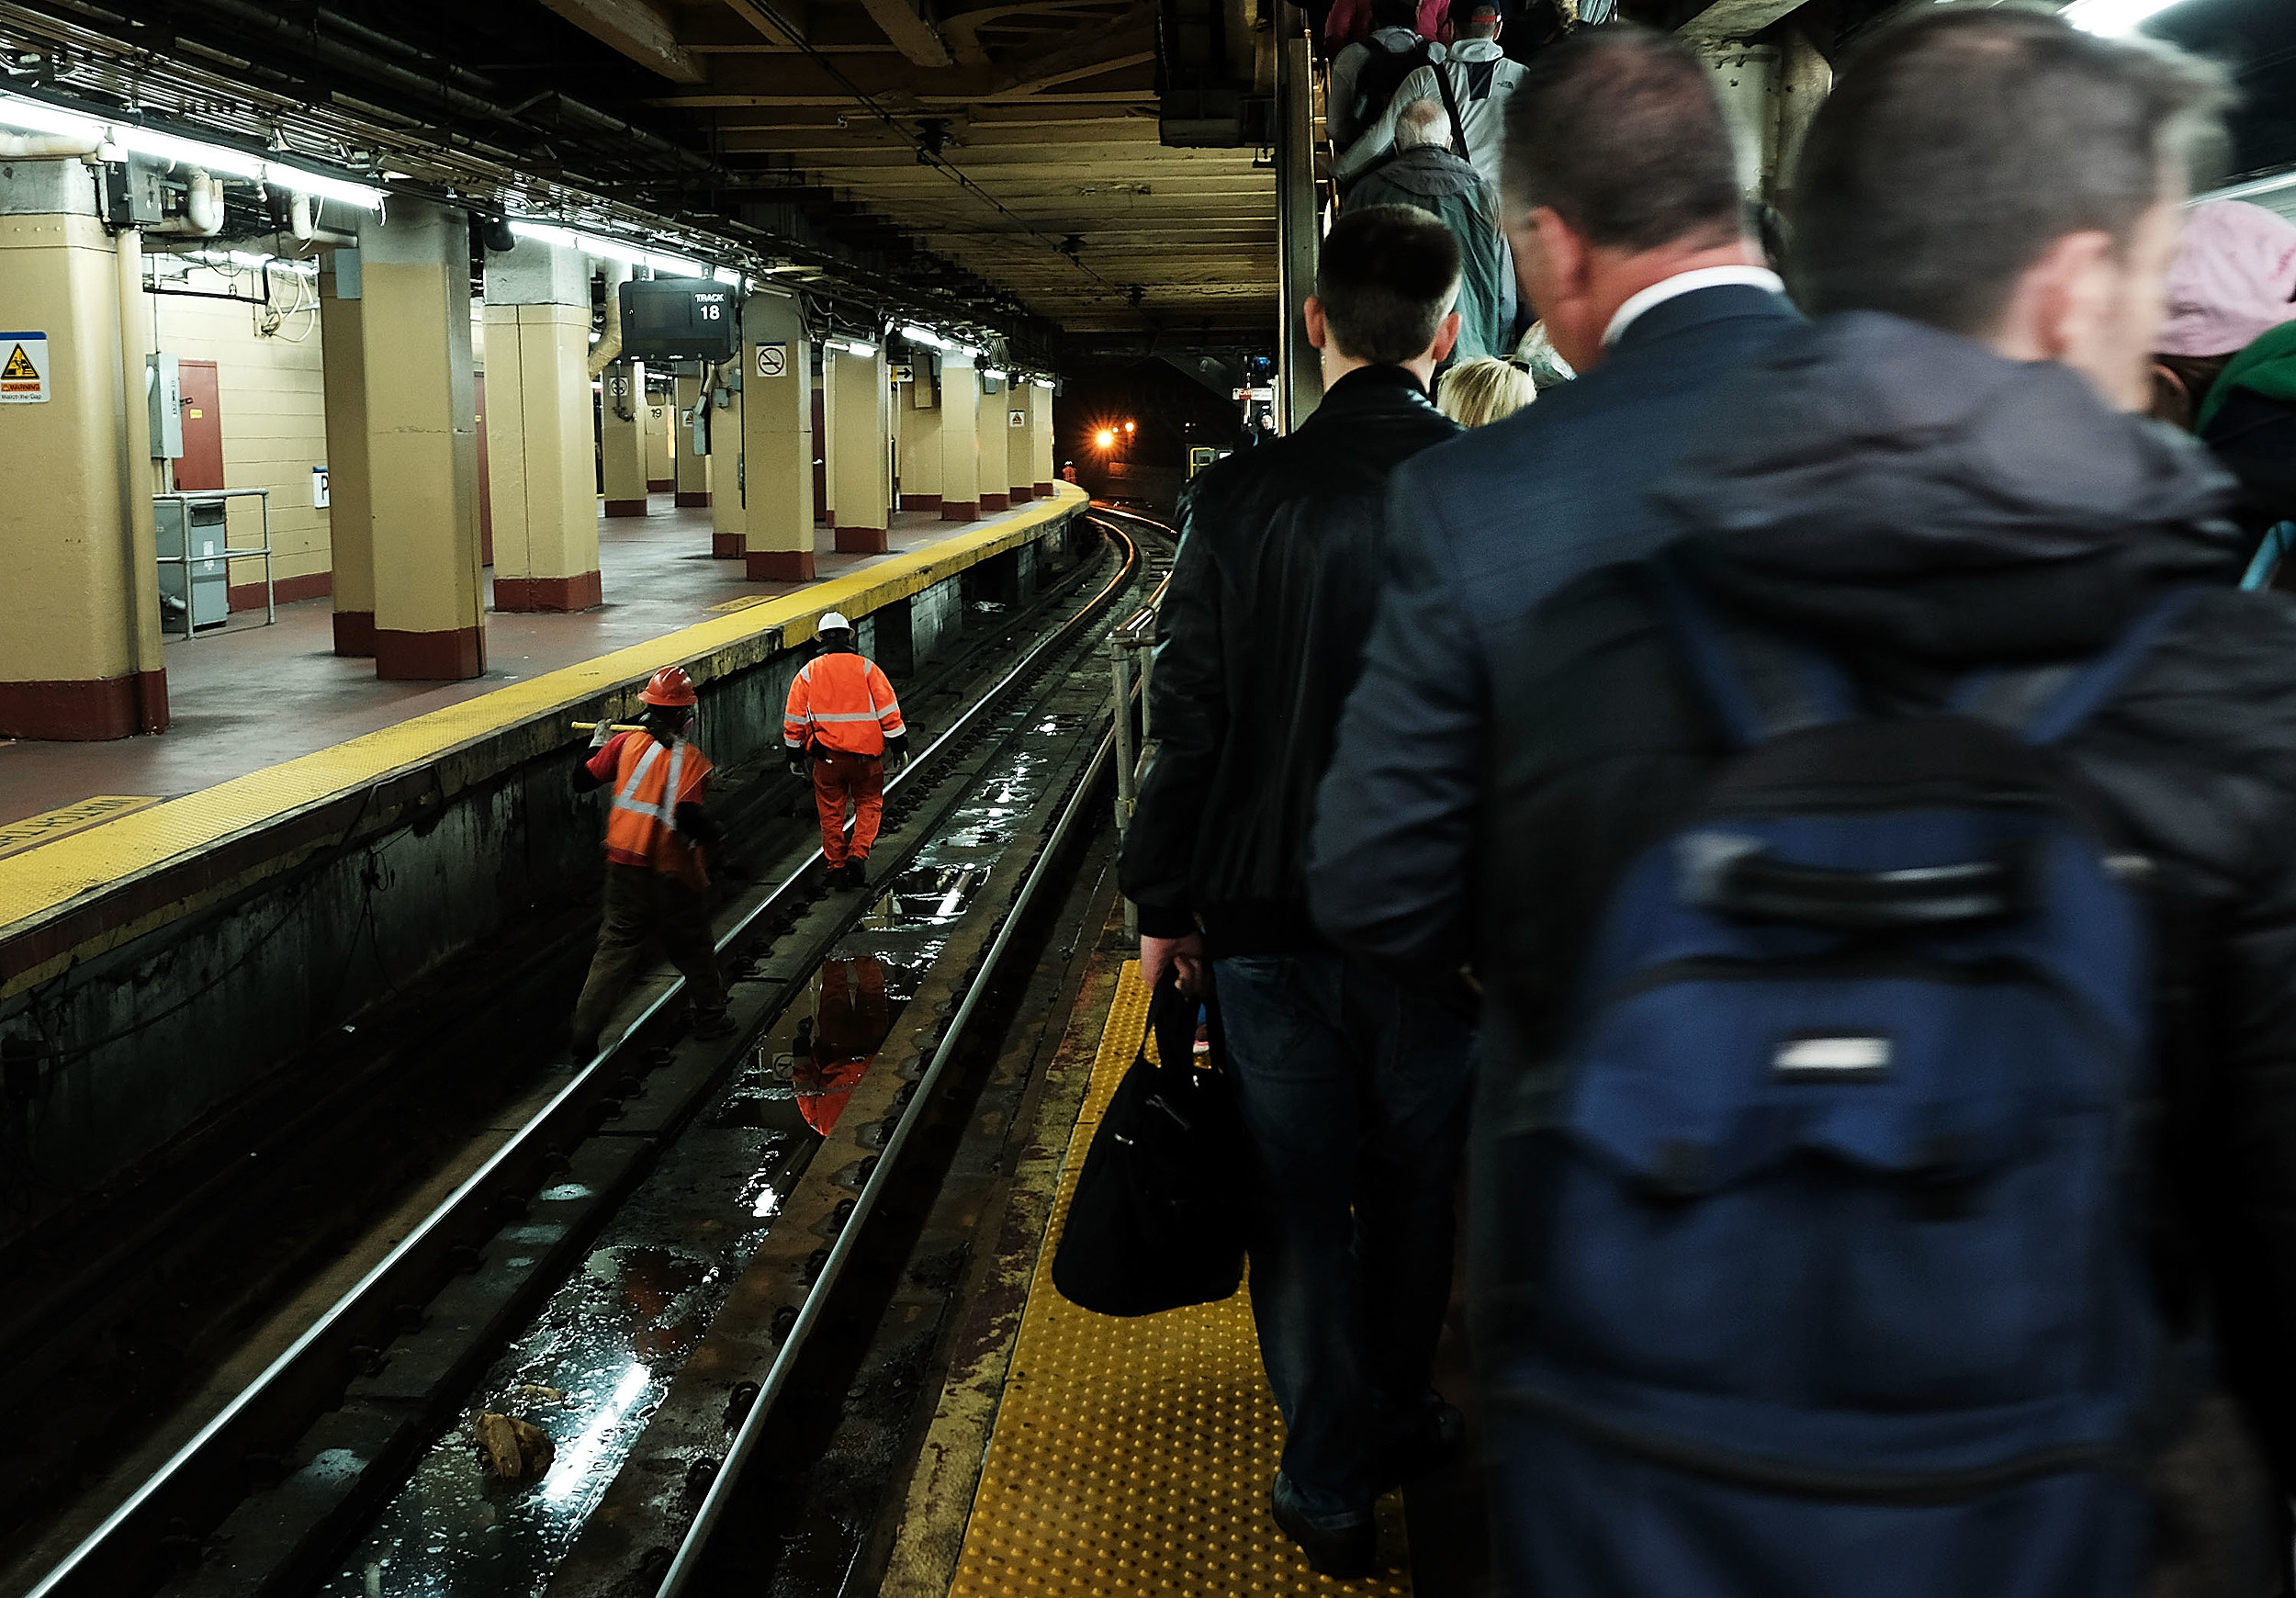 Delays predicted amid Amtrak's accelerated Penn Station work